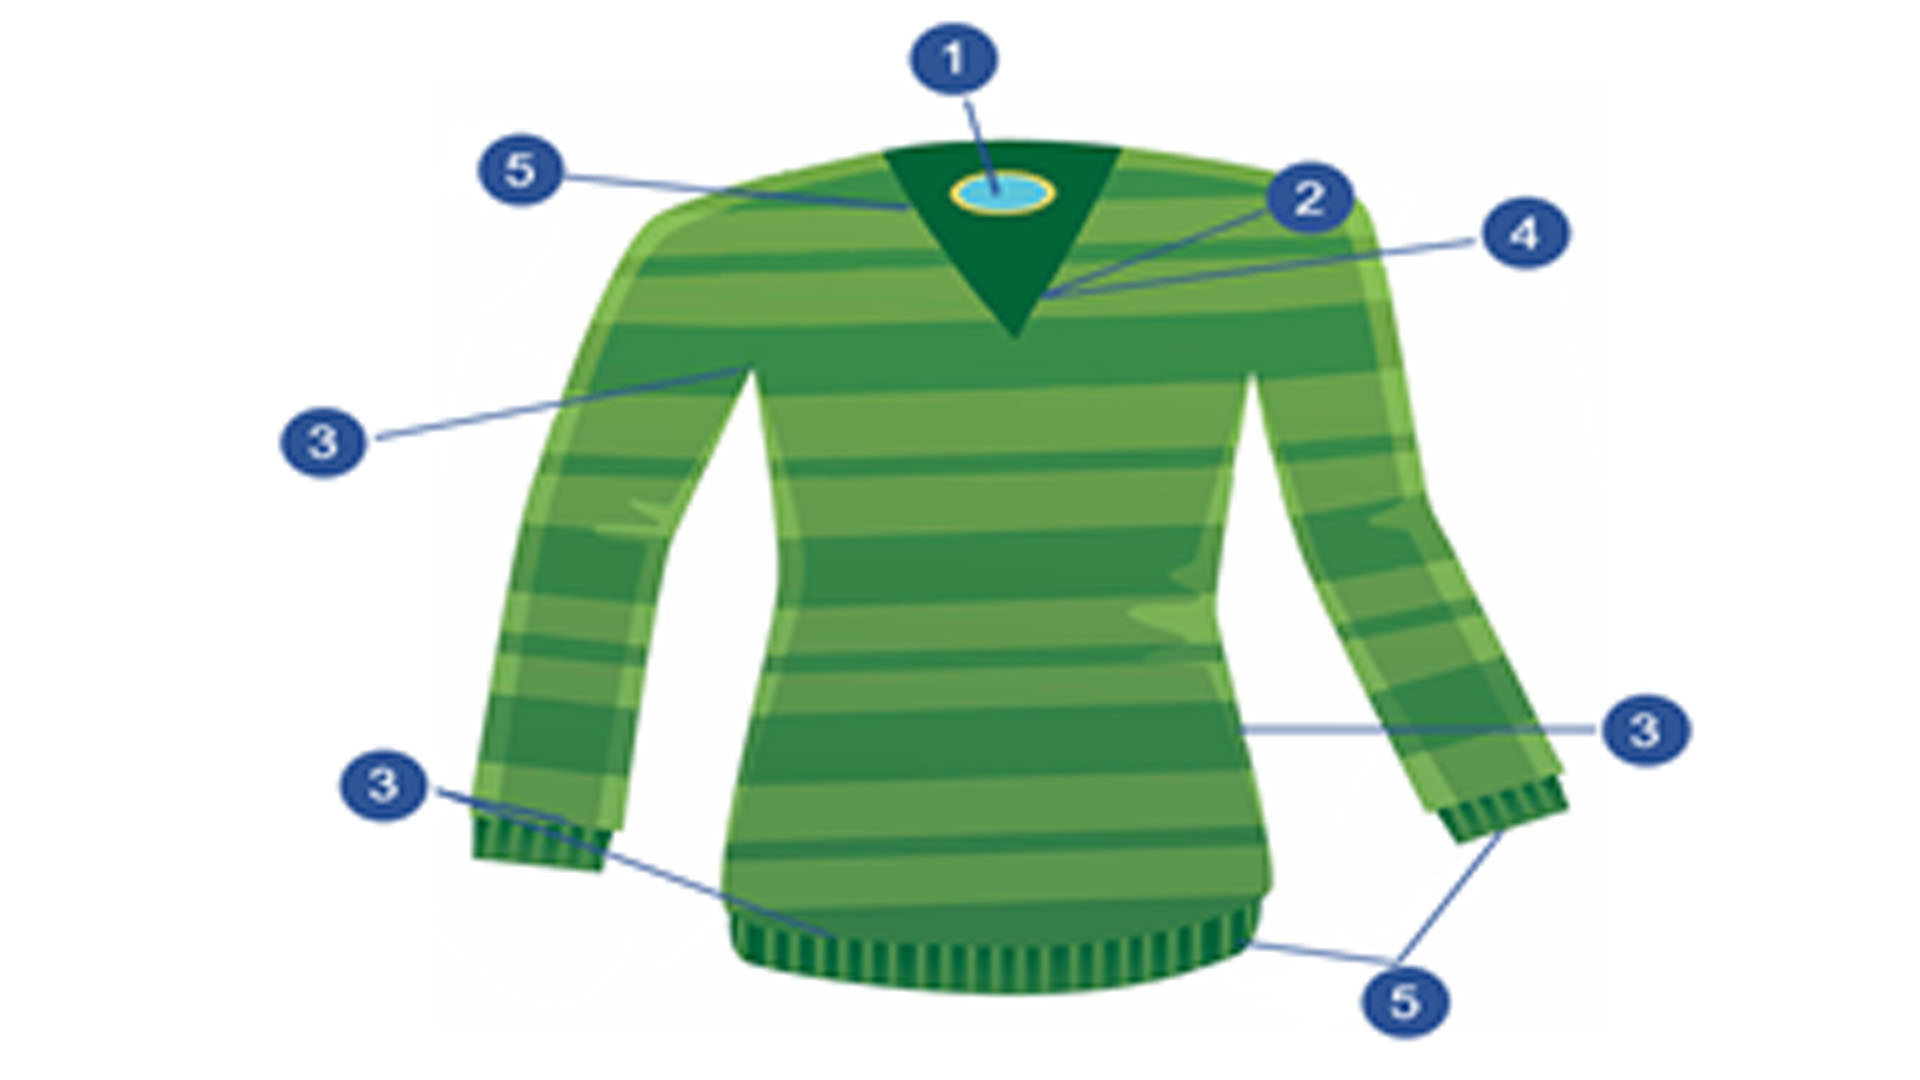 Ladieswear Sweaters diagram